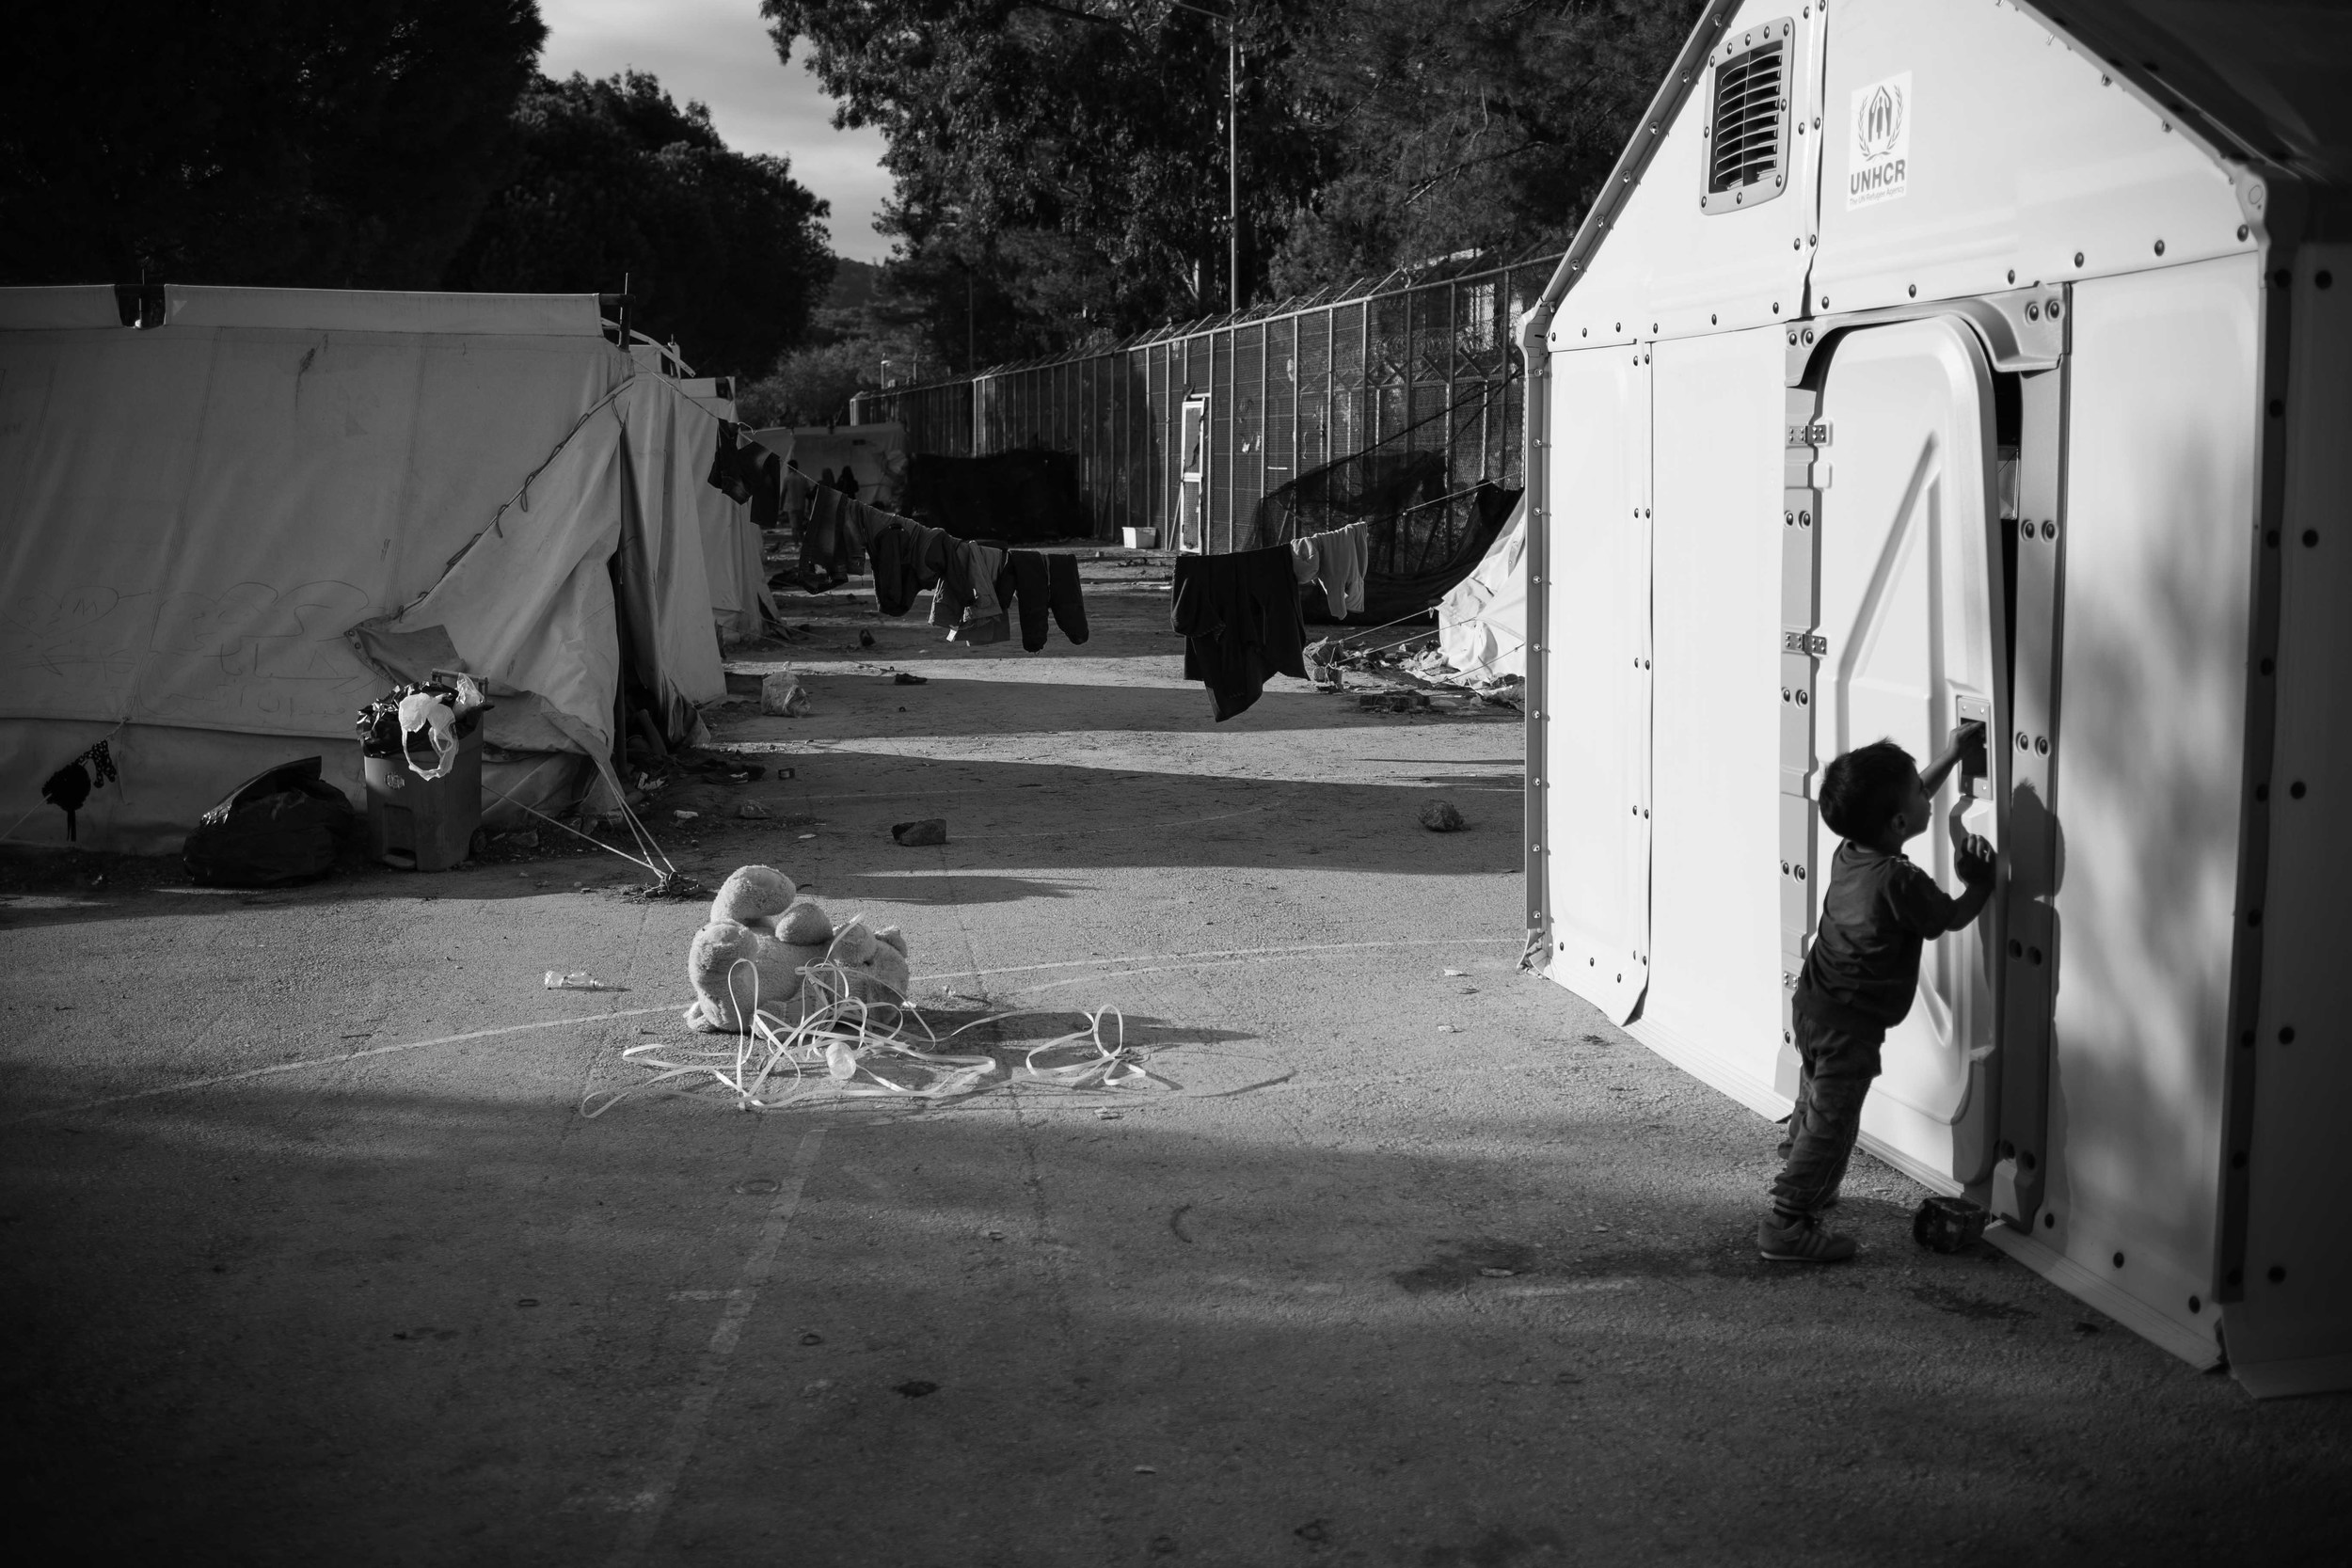 A game of hide and seek with friends in Moria refugee camp.